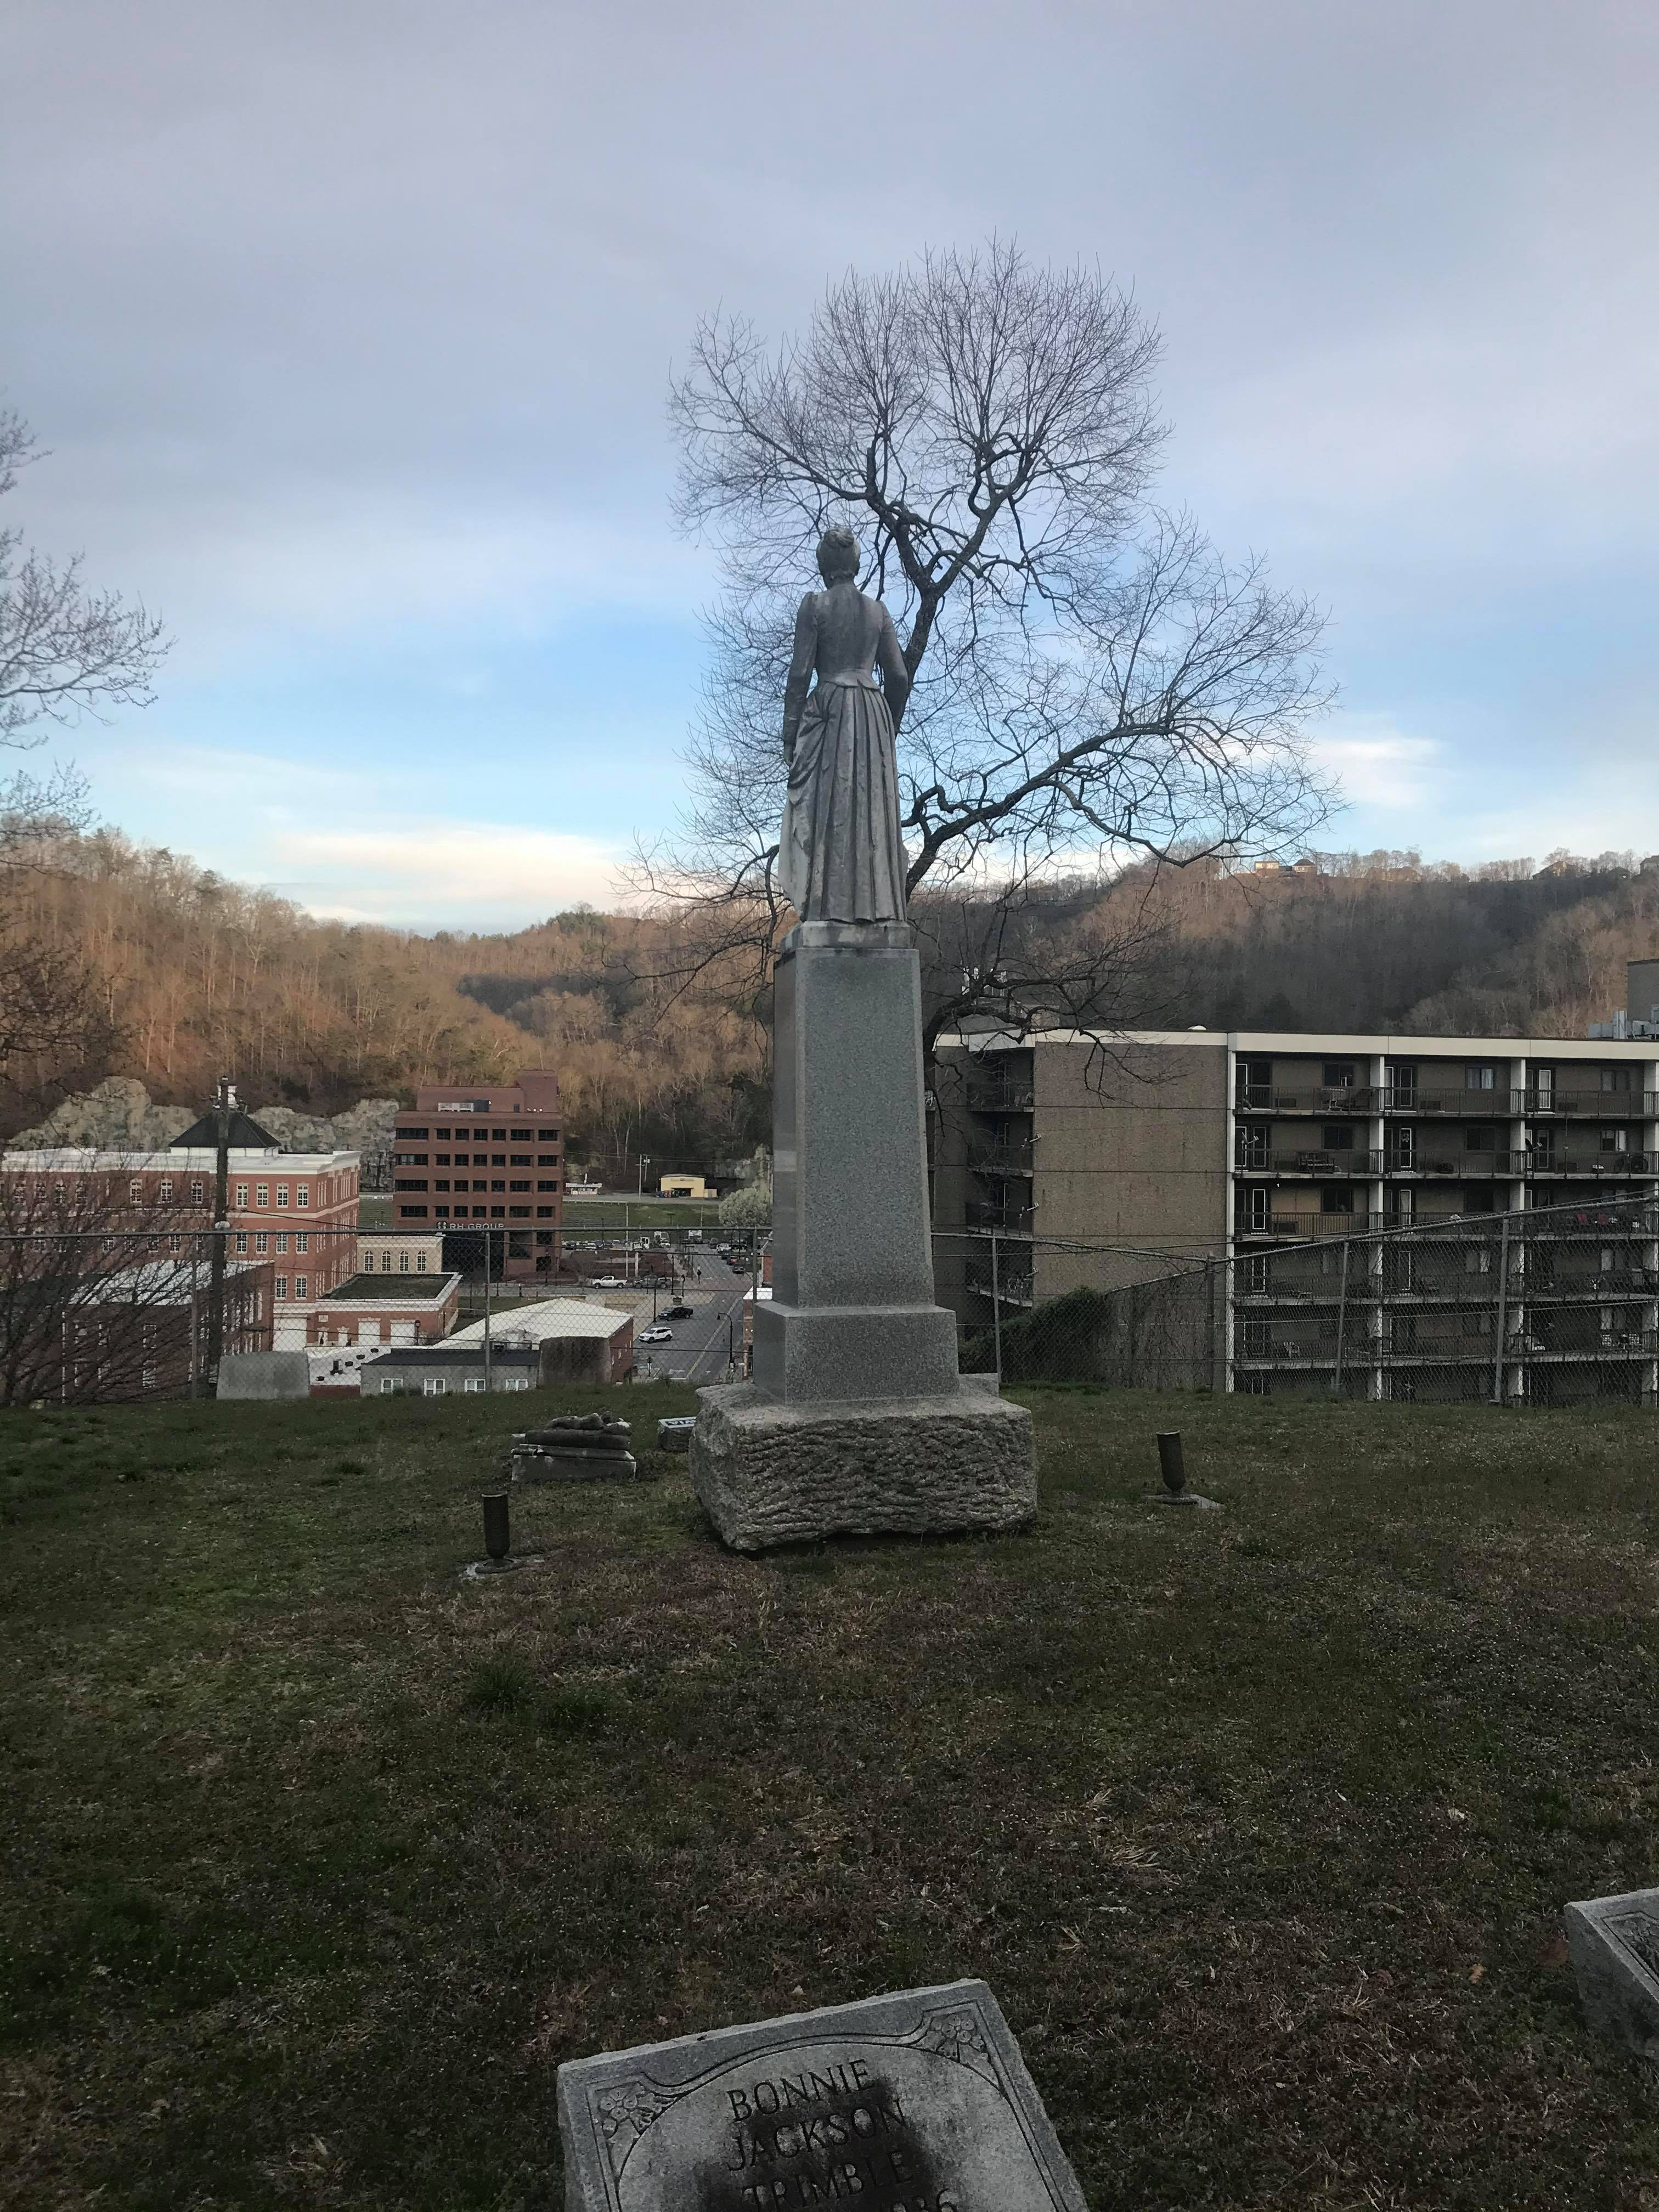 The statue and its view of Pikeville